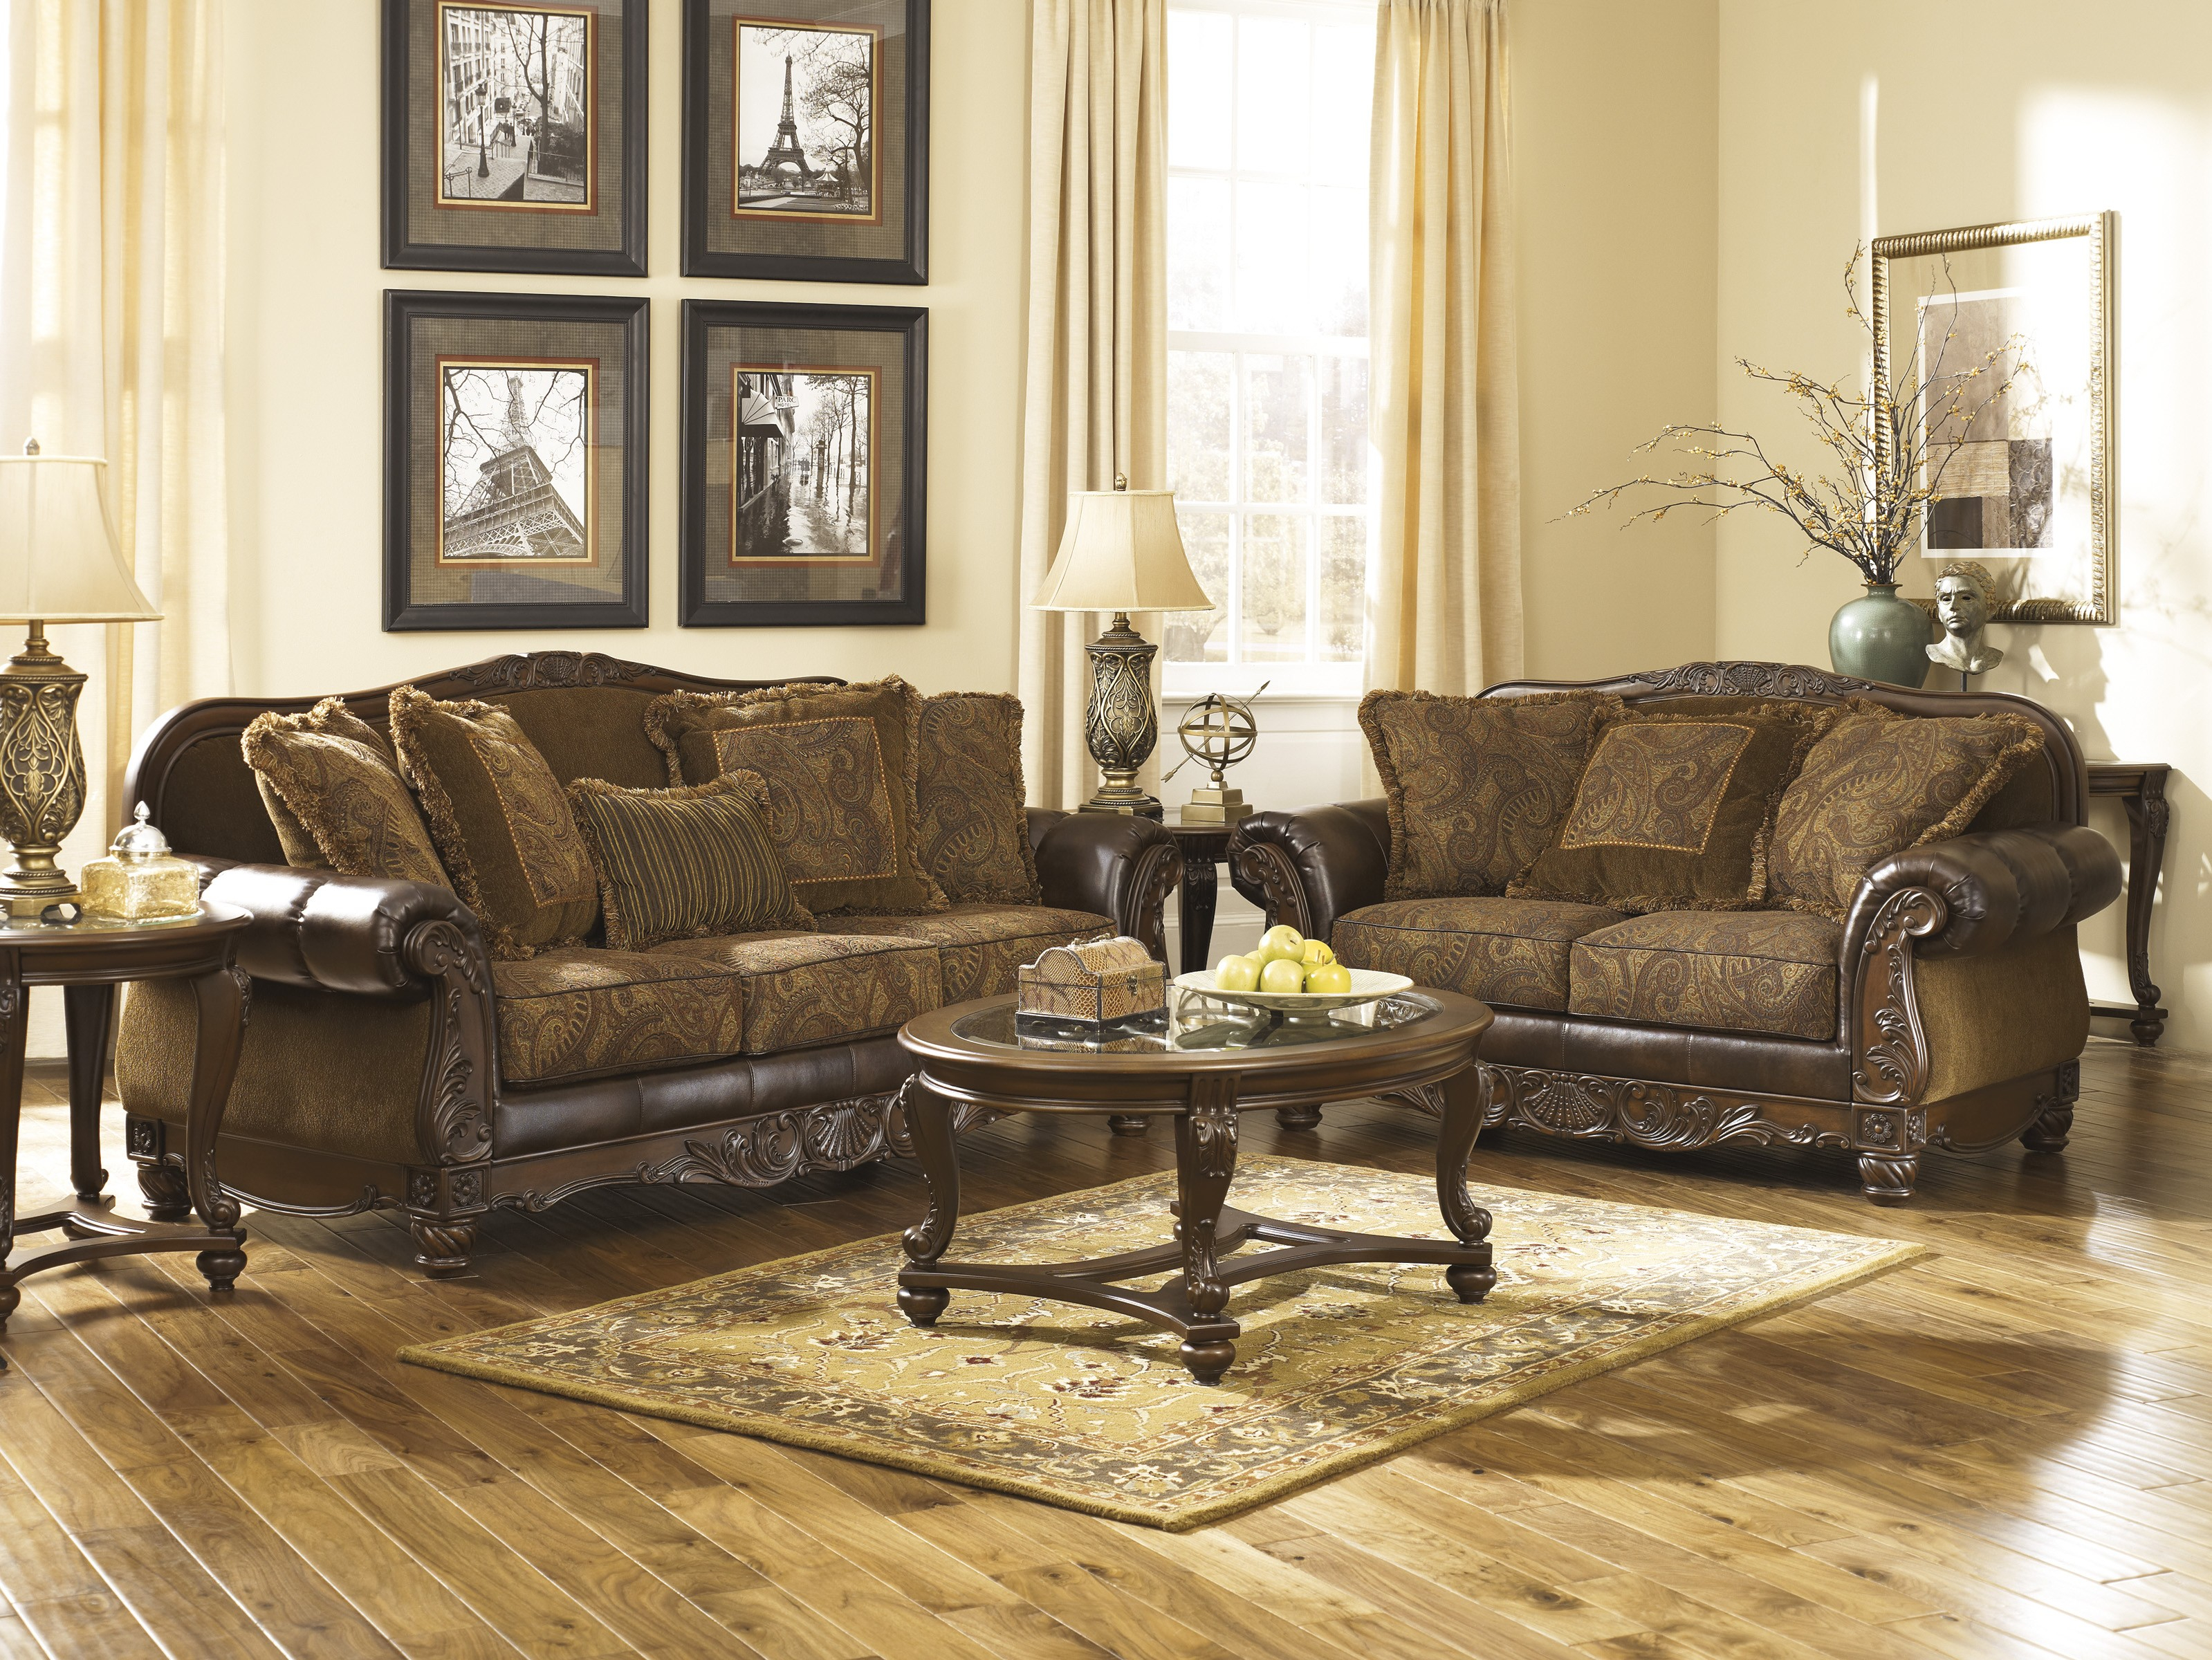 Awesome And Beautiful Rent A Center Living Room Sets Interesting with regard to 11 Some of the Coolest Ideas How to Build Rent A Center Living Room Set